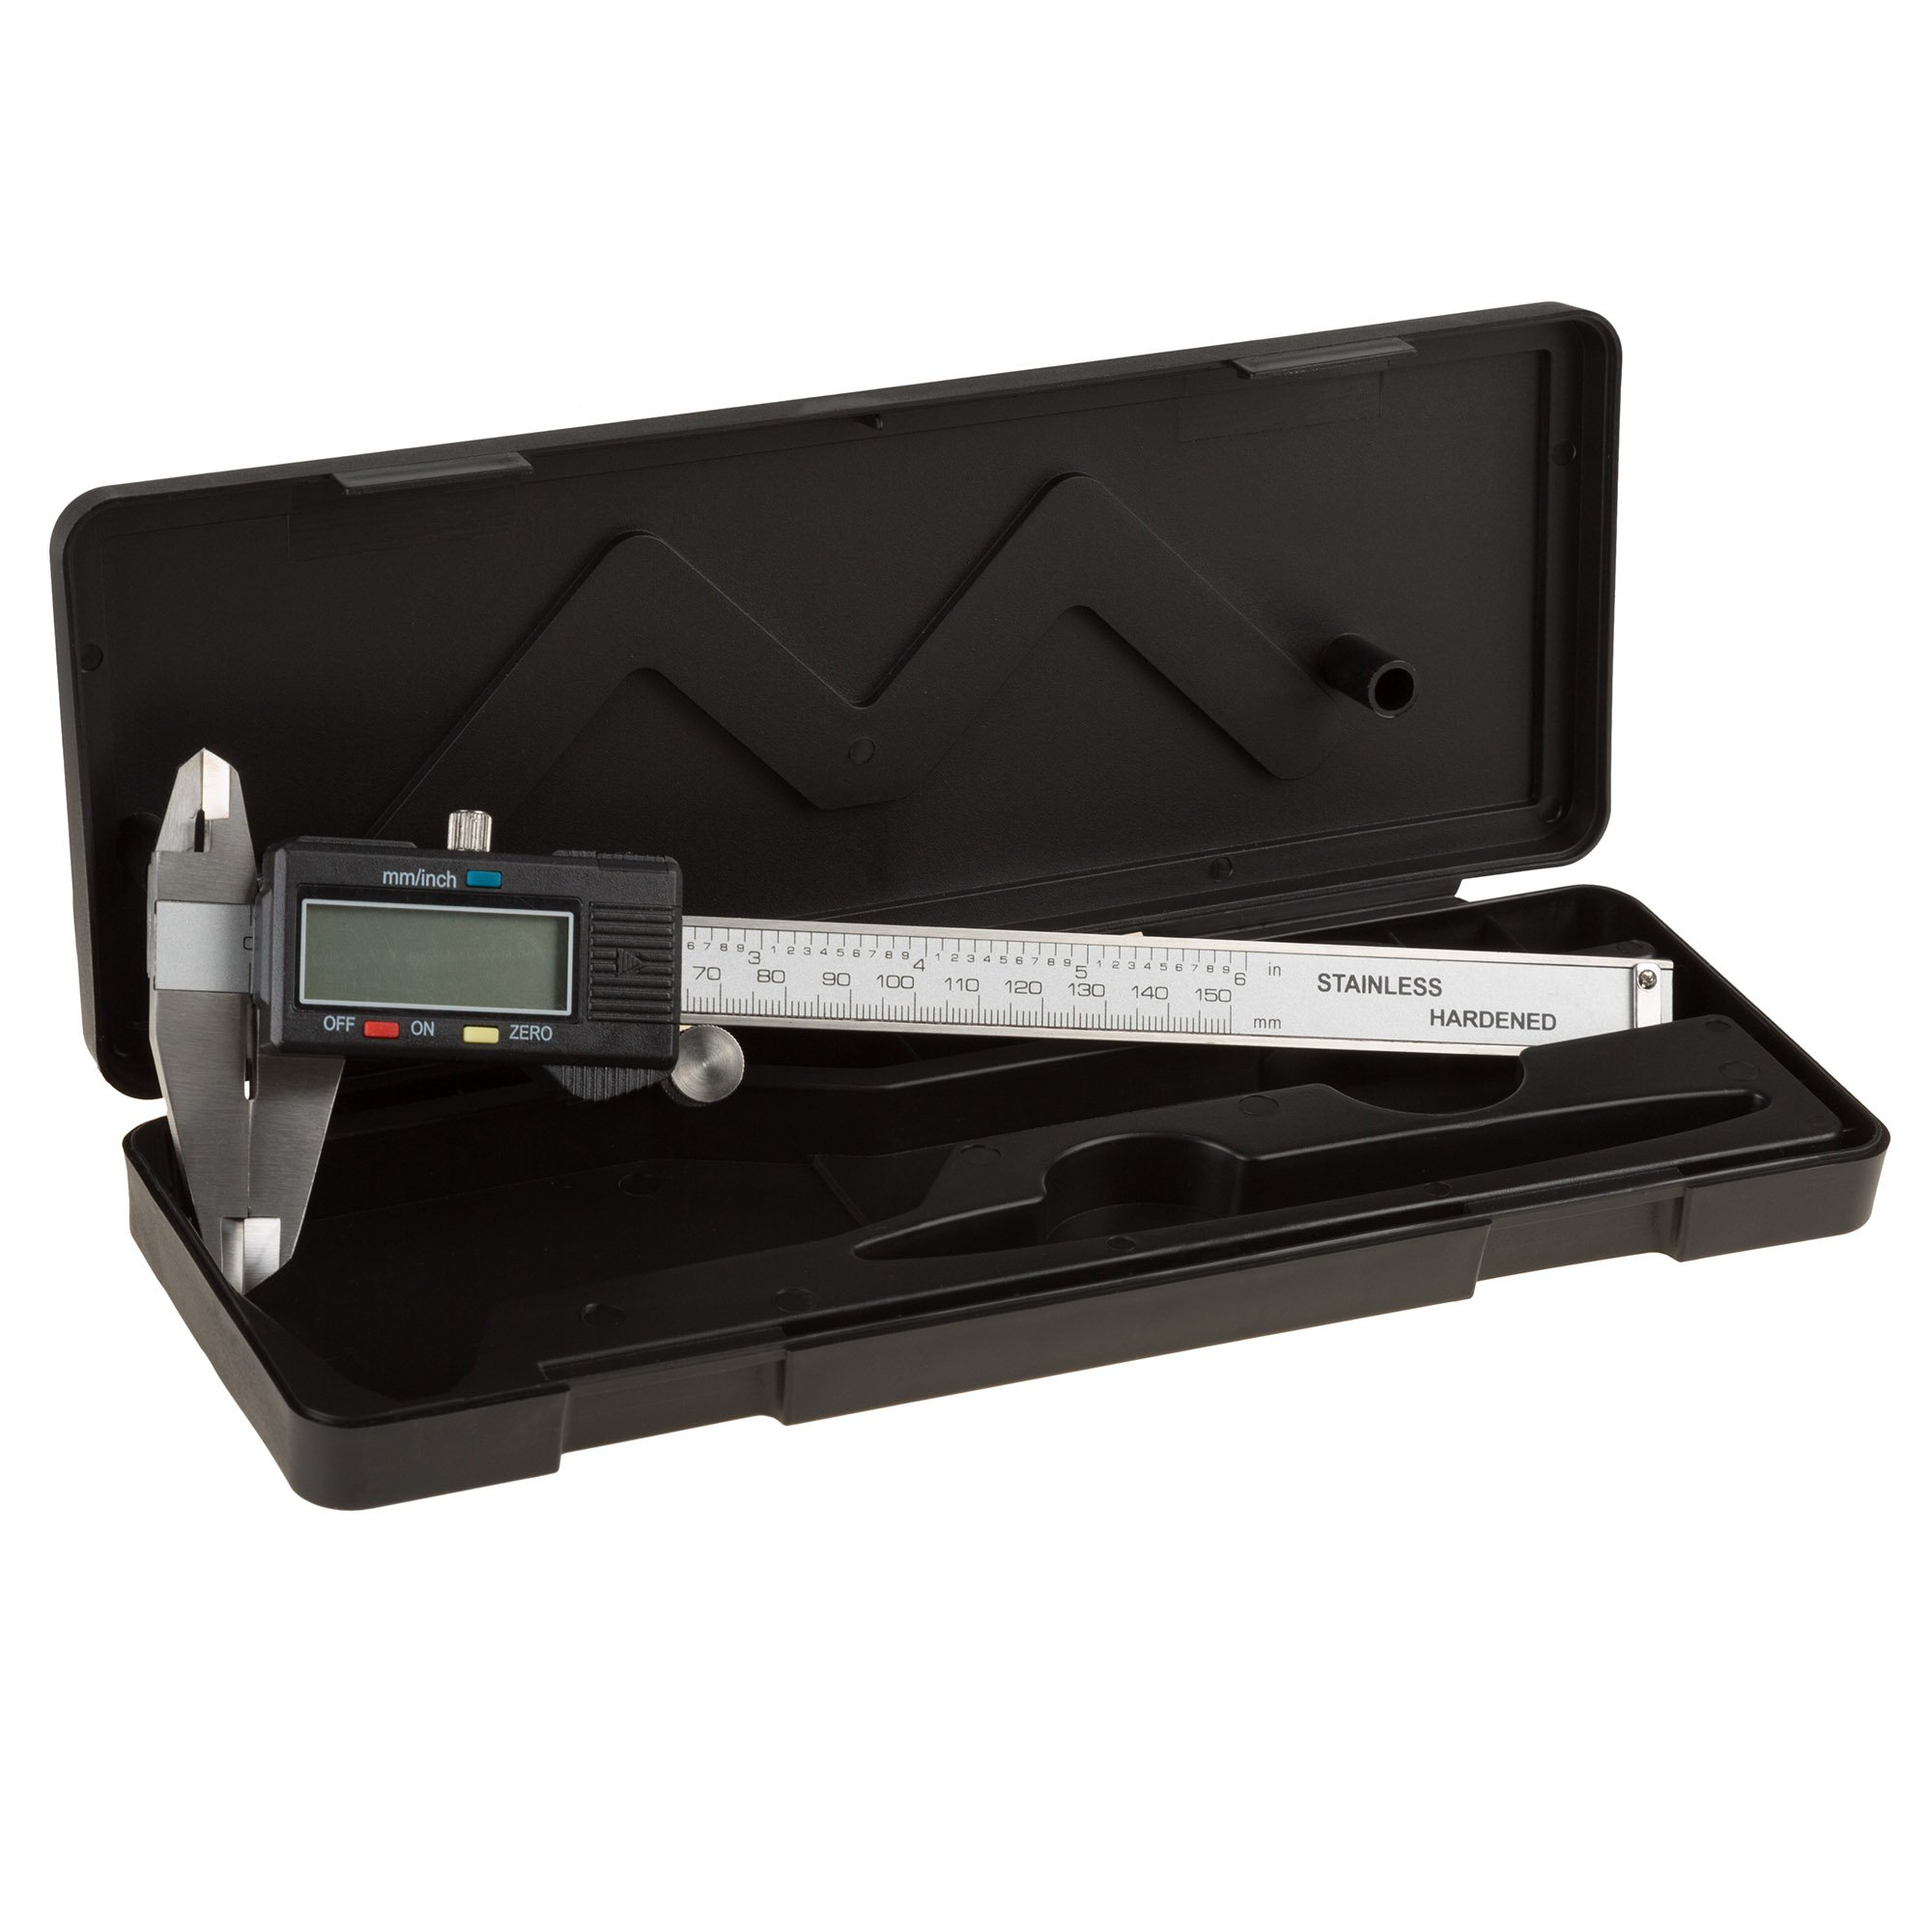 Electronic Digital Caliper, Stainless Steel with Extra Large LCD Screen and Inch/Metric Conversion- Measures Up to 6 Inch (0-150mm) by Stalwart by Stalwart (Image #5)